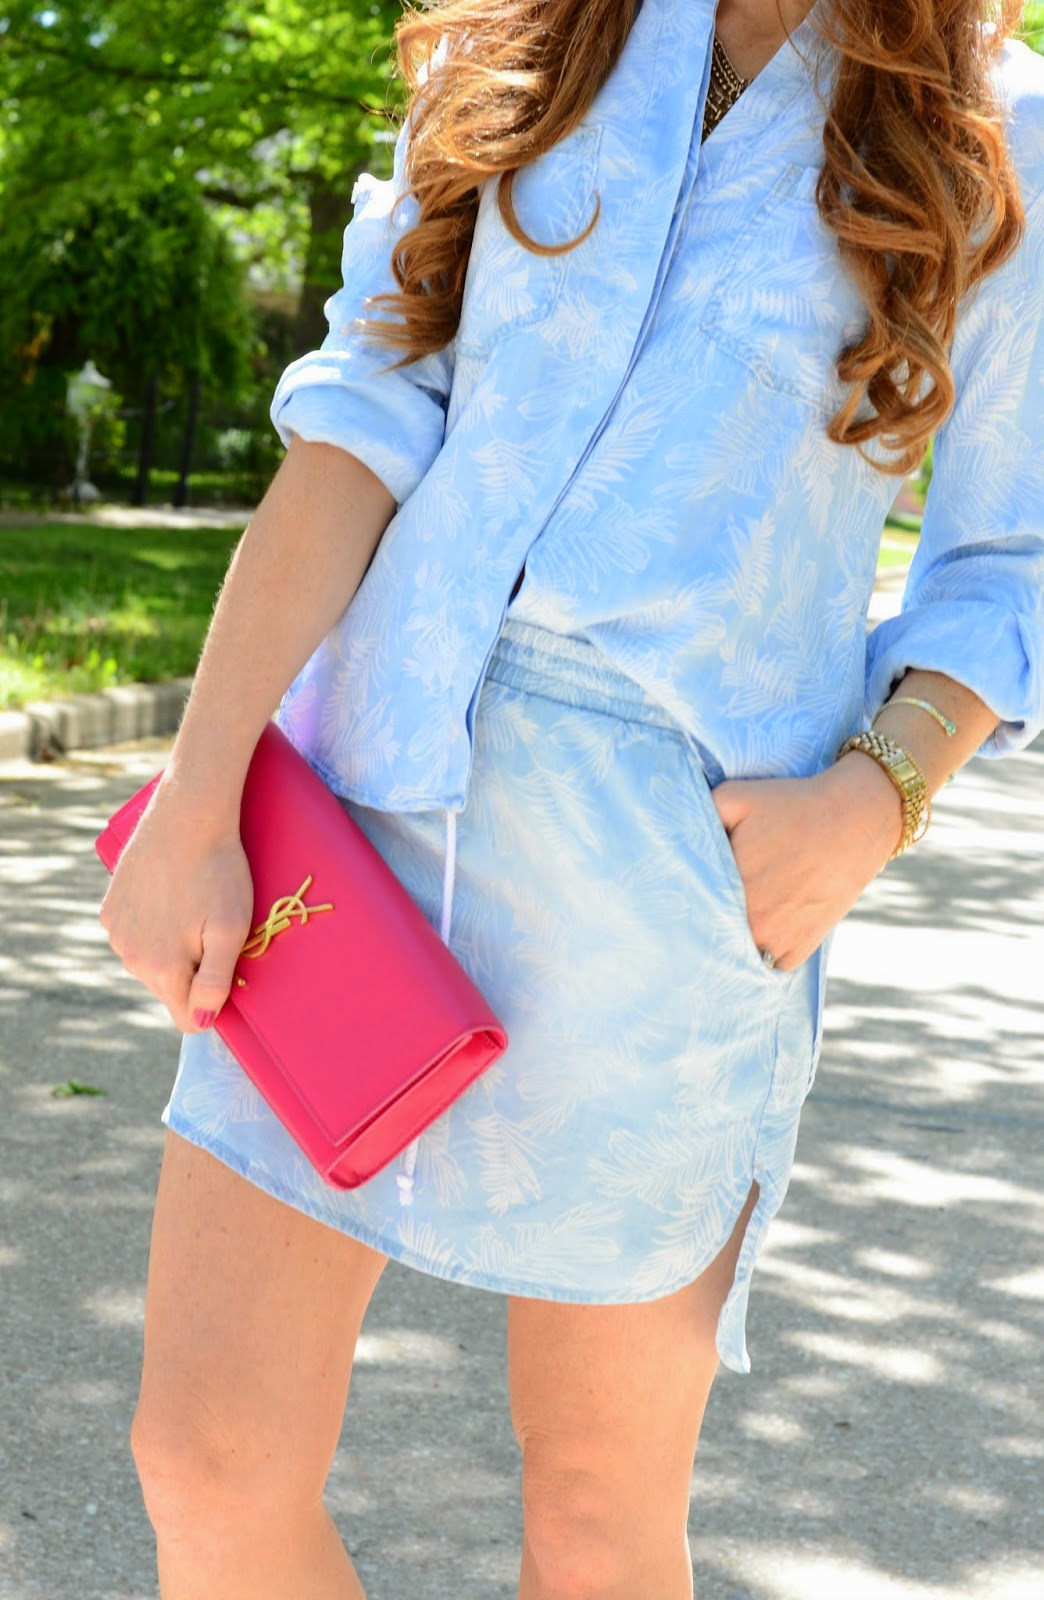 pink ysl clutch and chambray top